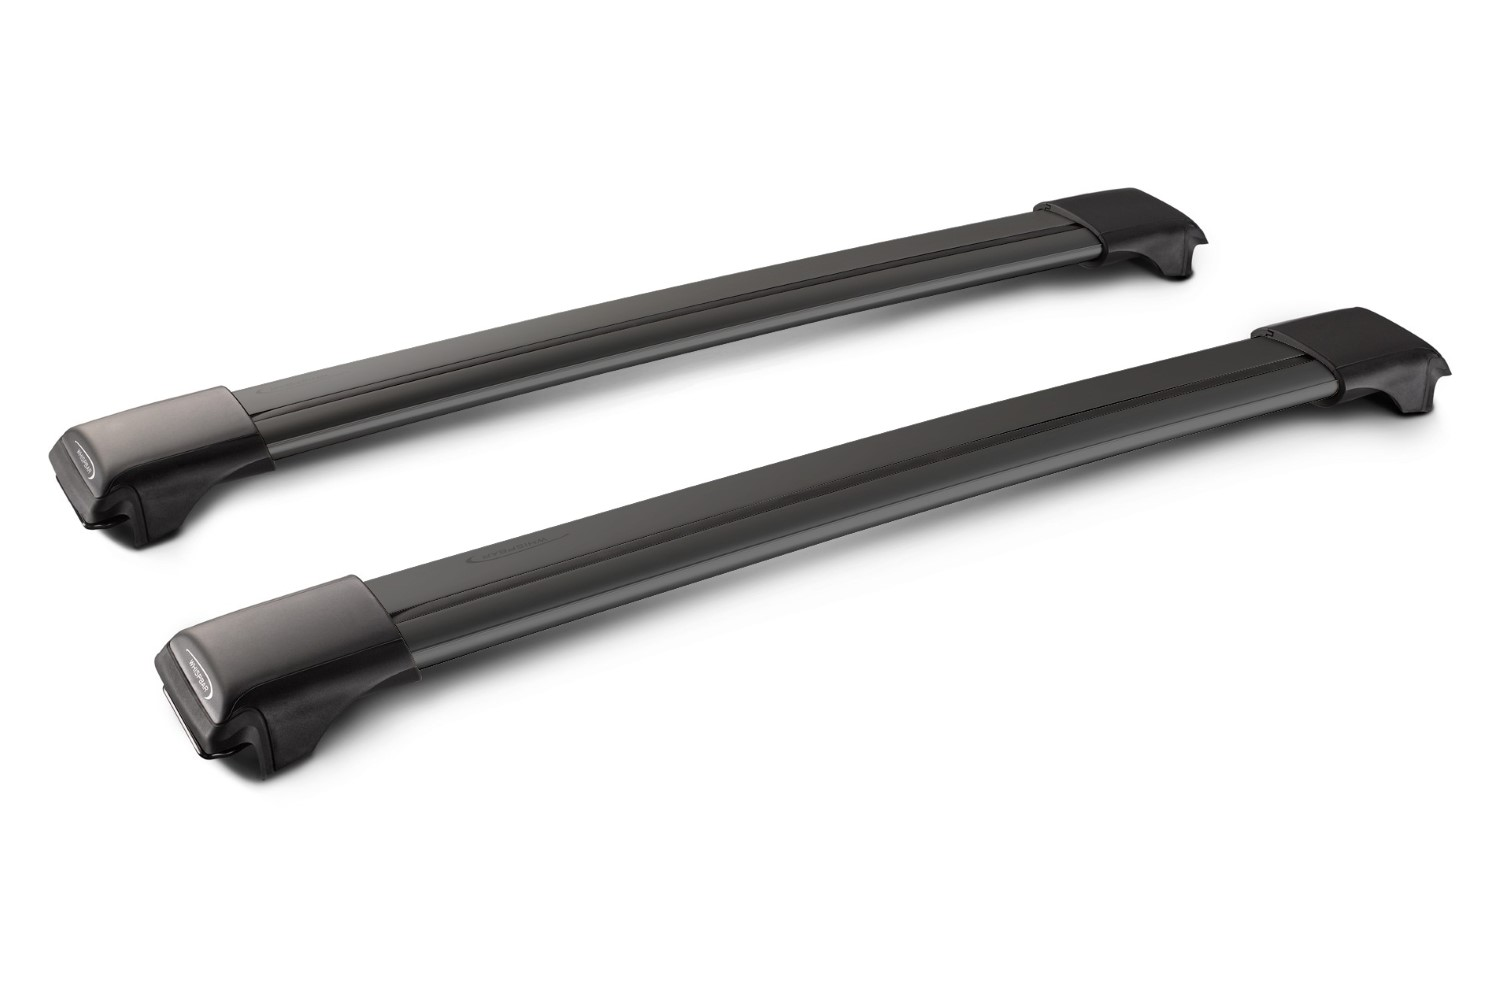 Dakdragers Mercedes-Benz E-Klasse estate (S212) 2009-2016 wagon Yakima Whispbar Rail Bar zwart